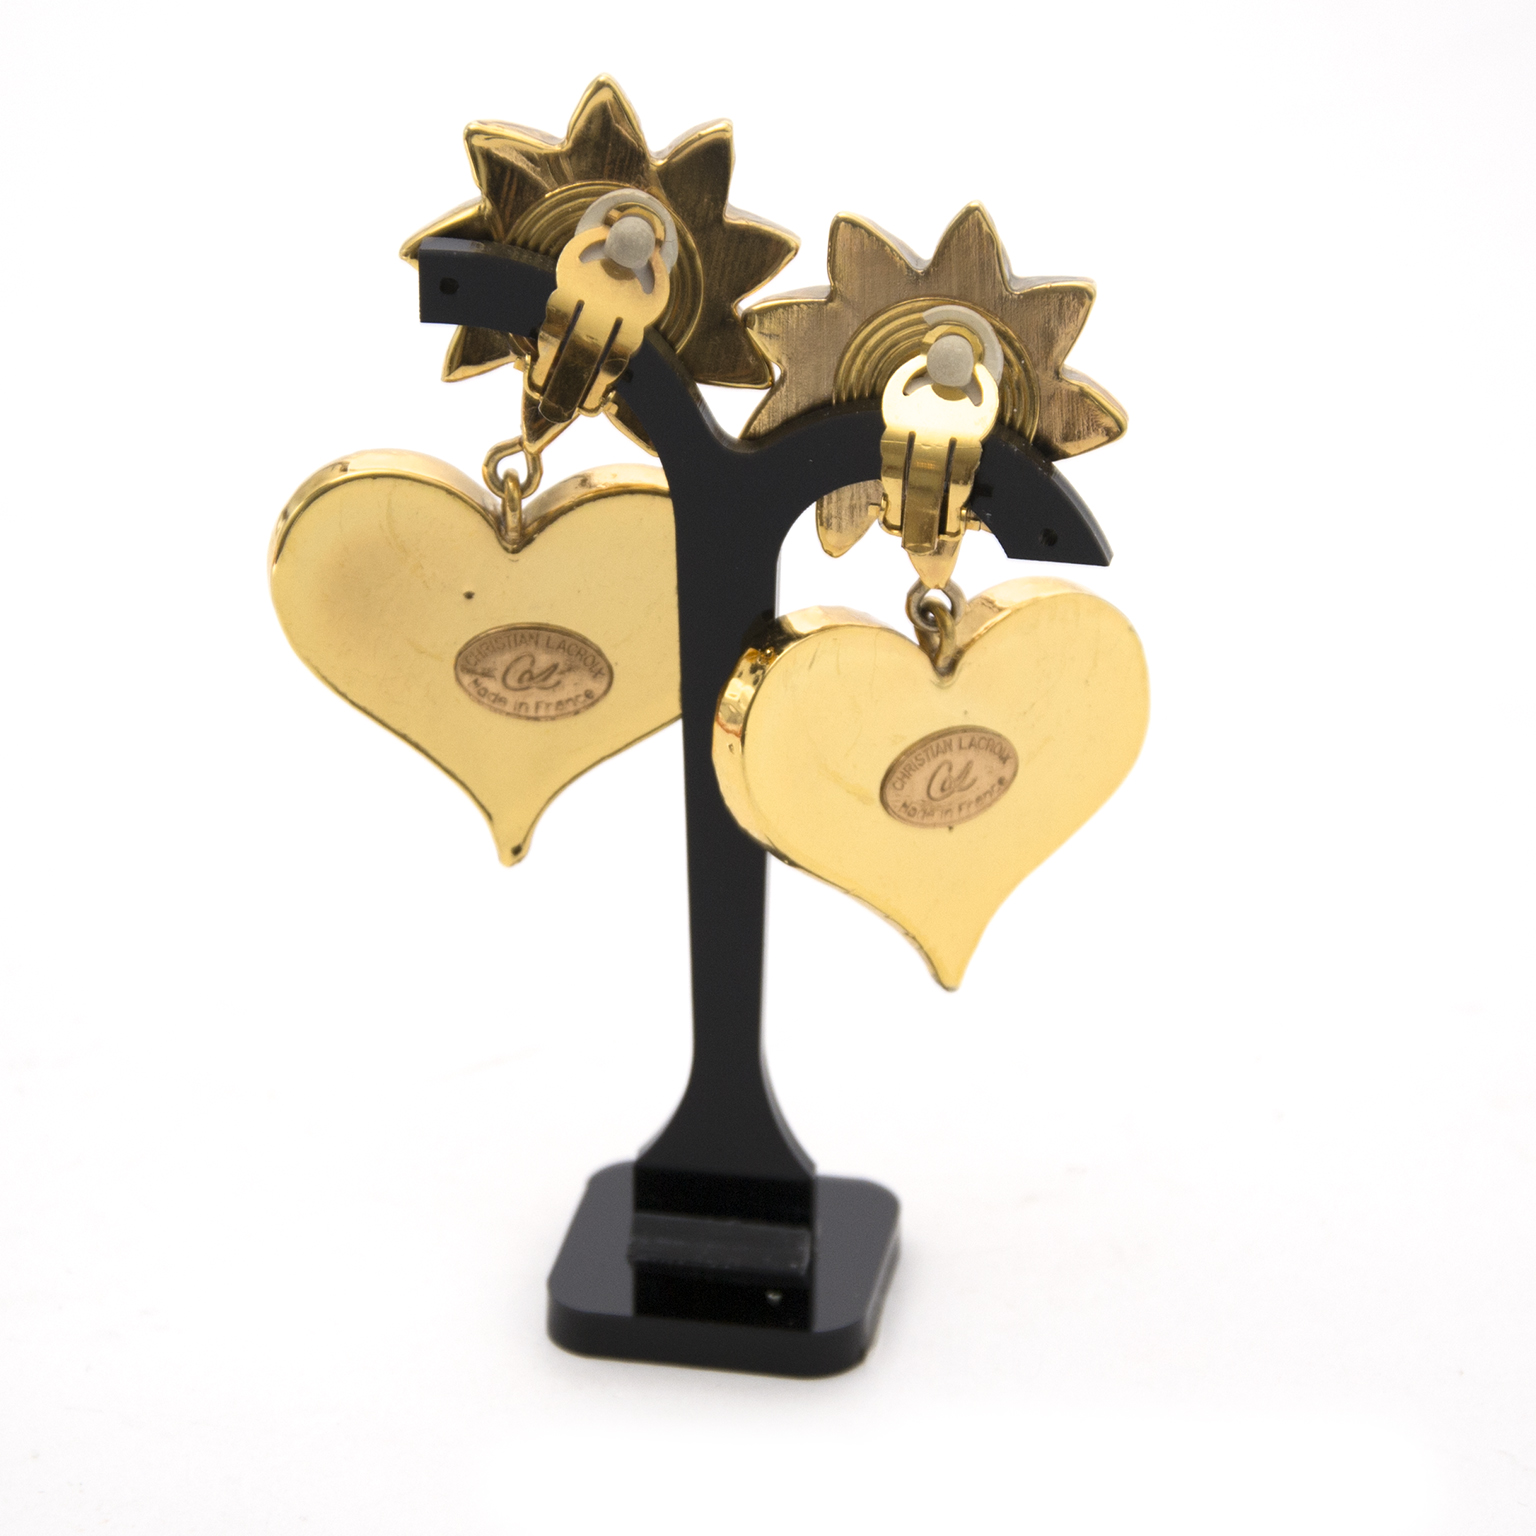 Christian Lacroix Star Heart Clip-On Earrings voor de beste prijs bij Labellov.com